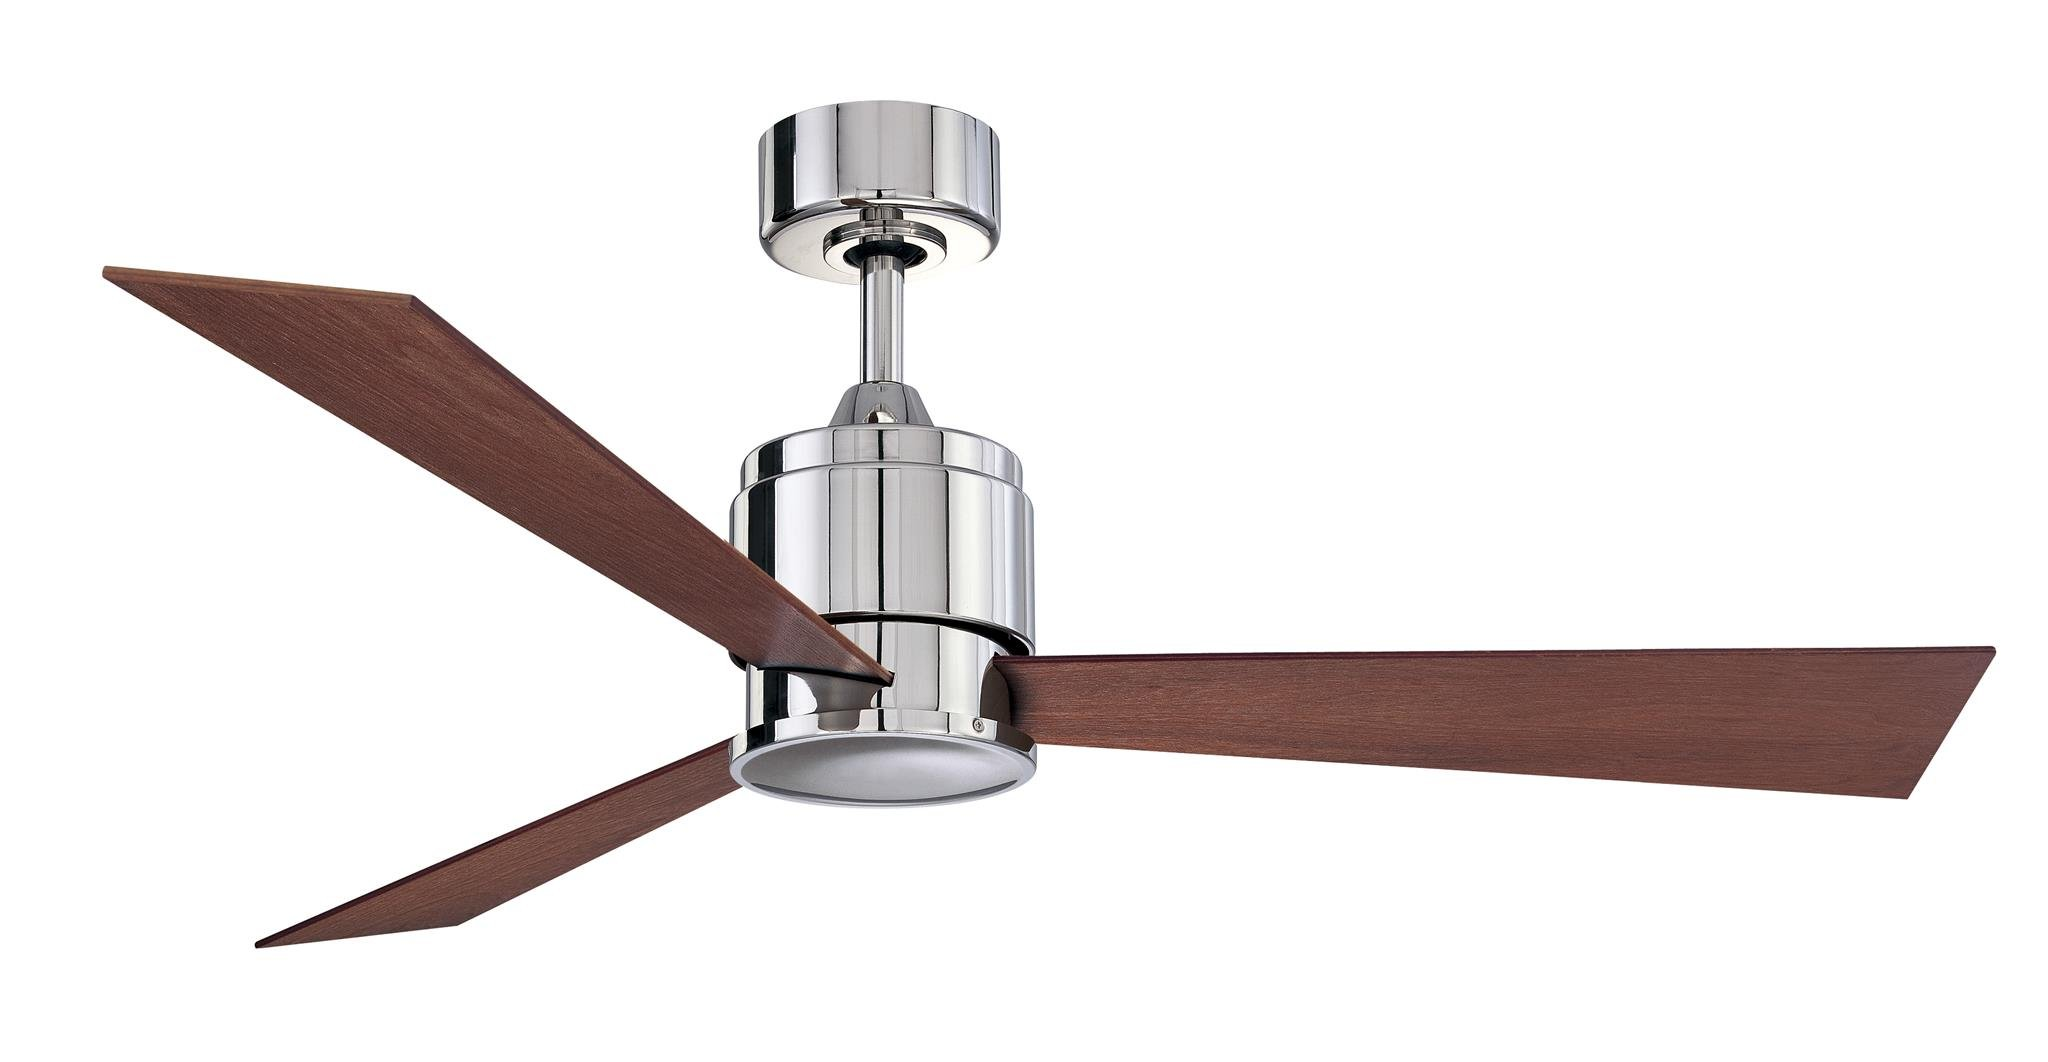 Fanimation Zonix - 54 inch - Polished Nickel with Cherry/Walnut Reversible Blades and Wall Control - FP4620PN by Fanimation